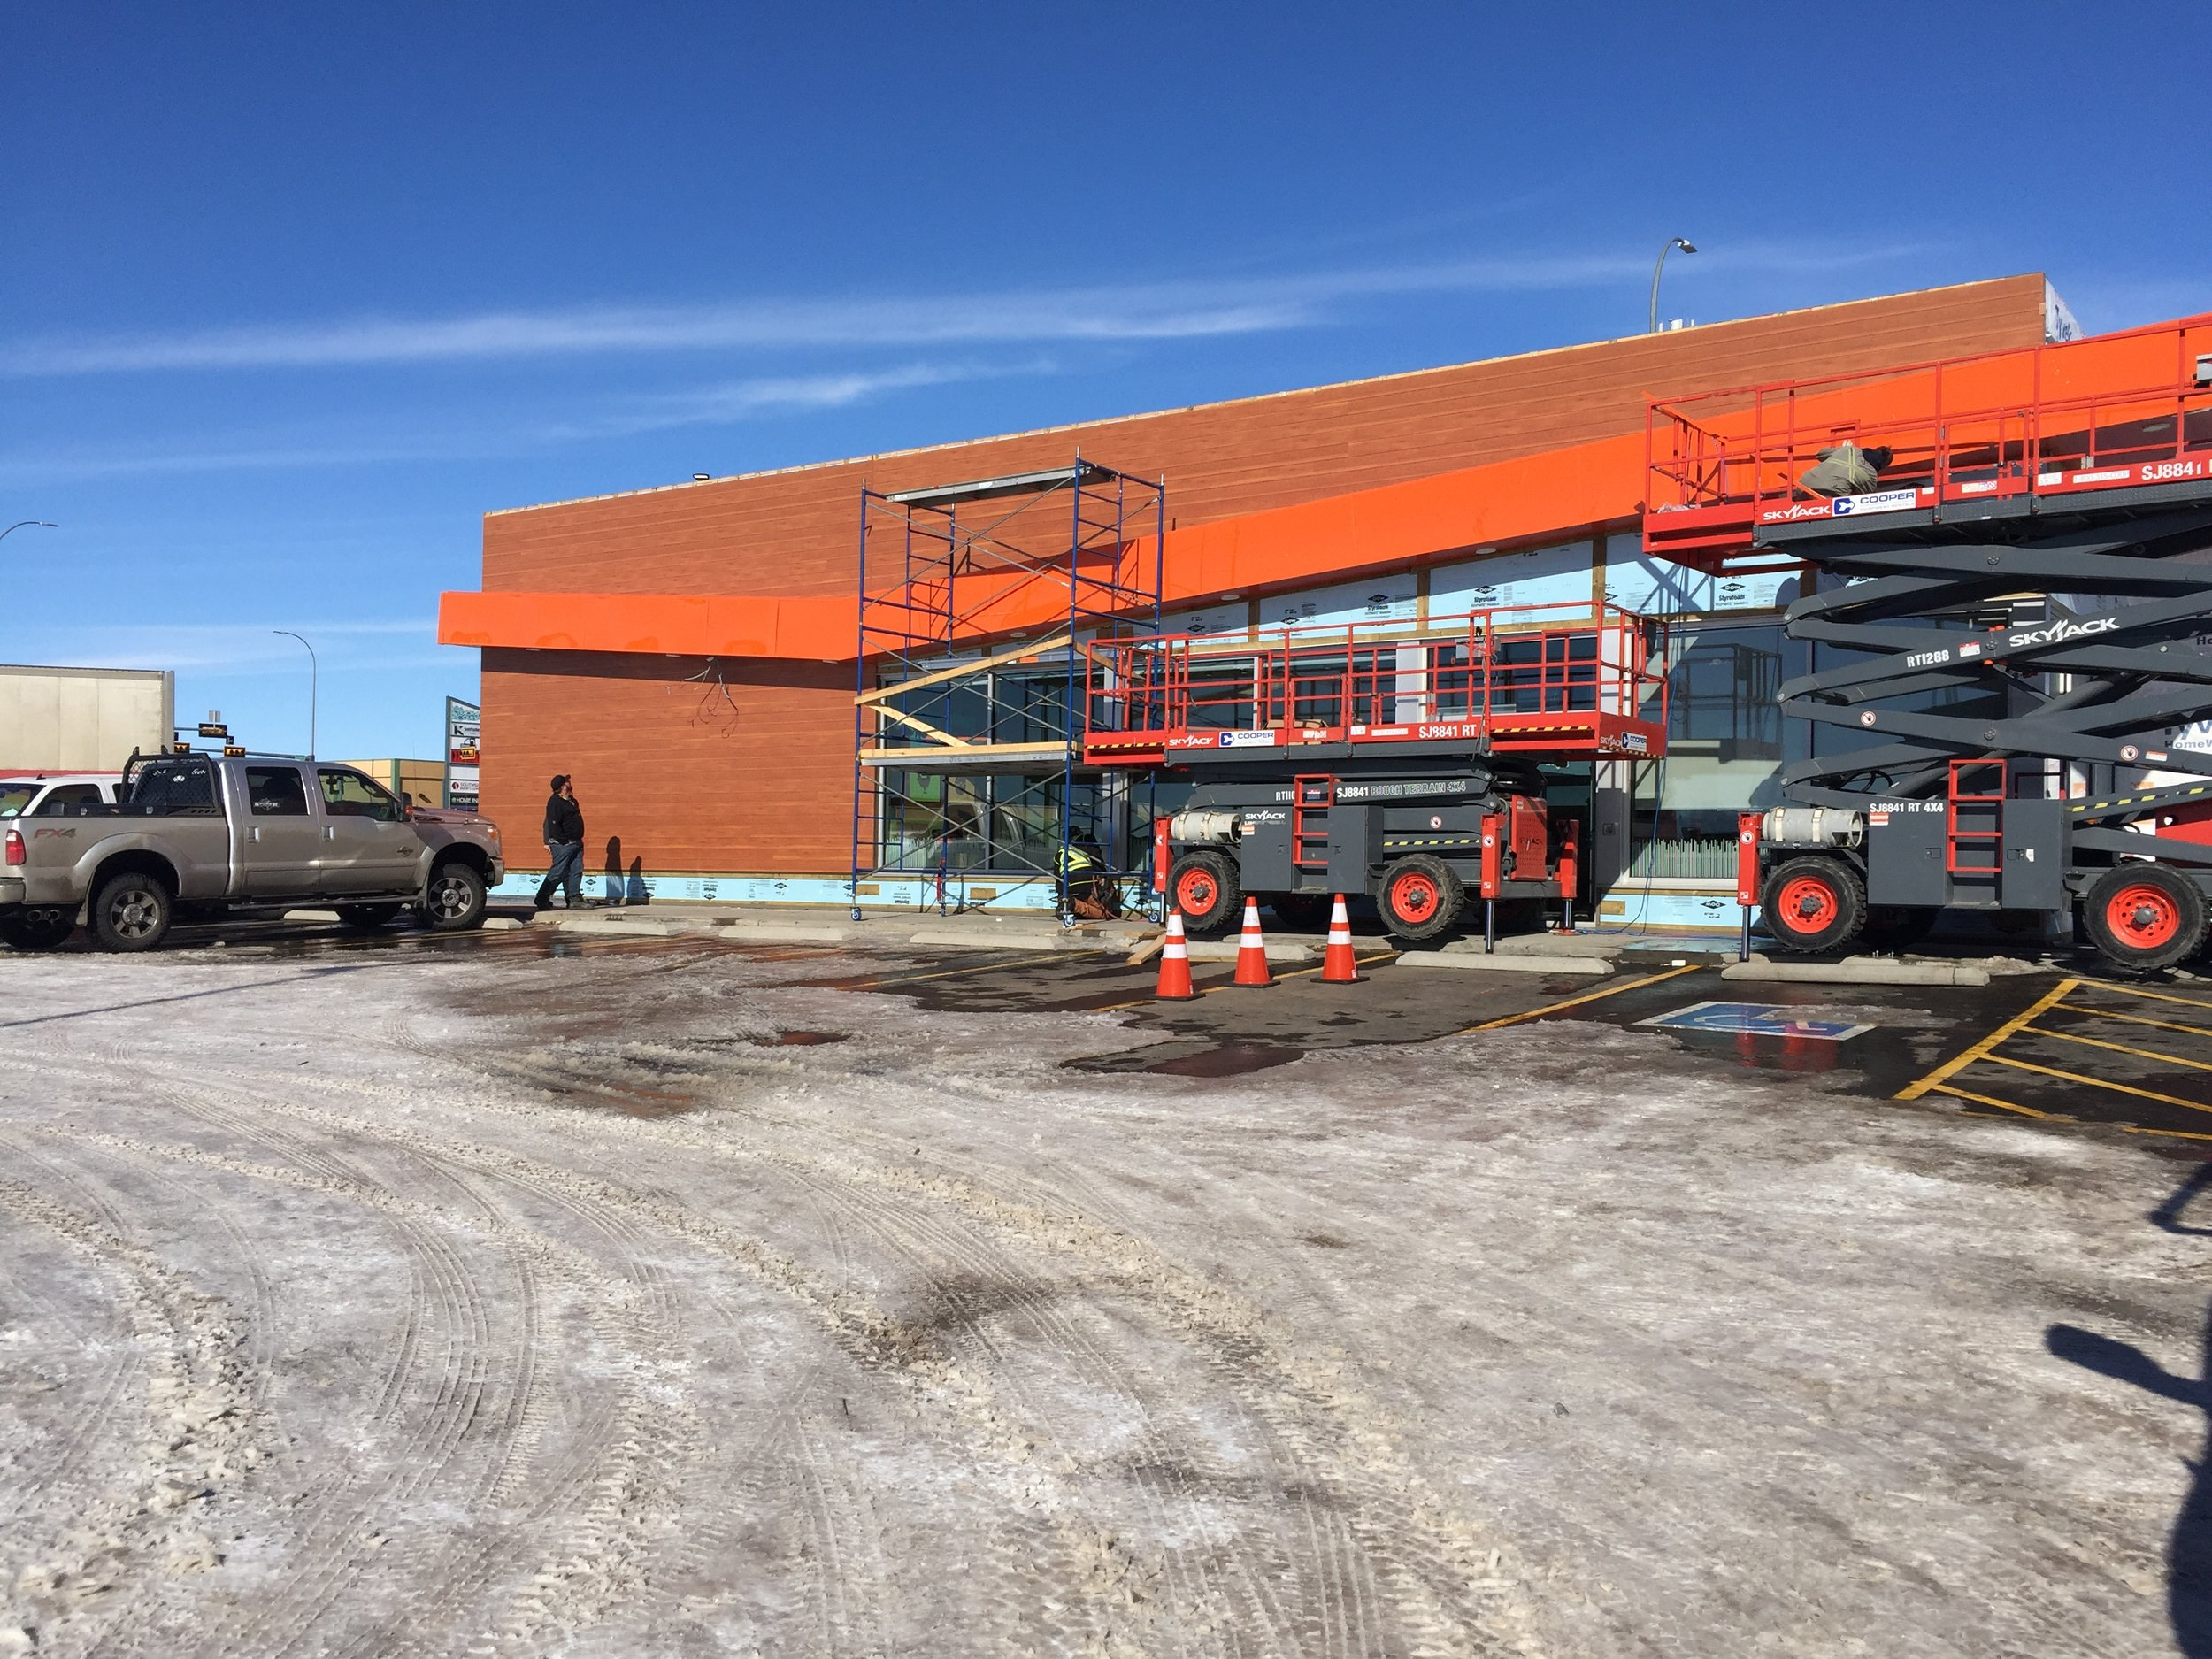 A&W - Medicine Hat  Located at 2501 Strachan RD SE, Medicine Hat, AB  A new building complete with utility coordination and electrical floor plans.